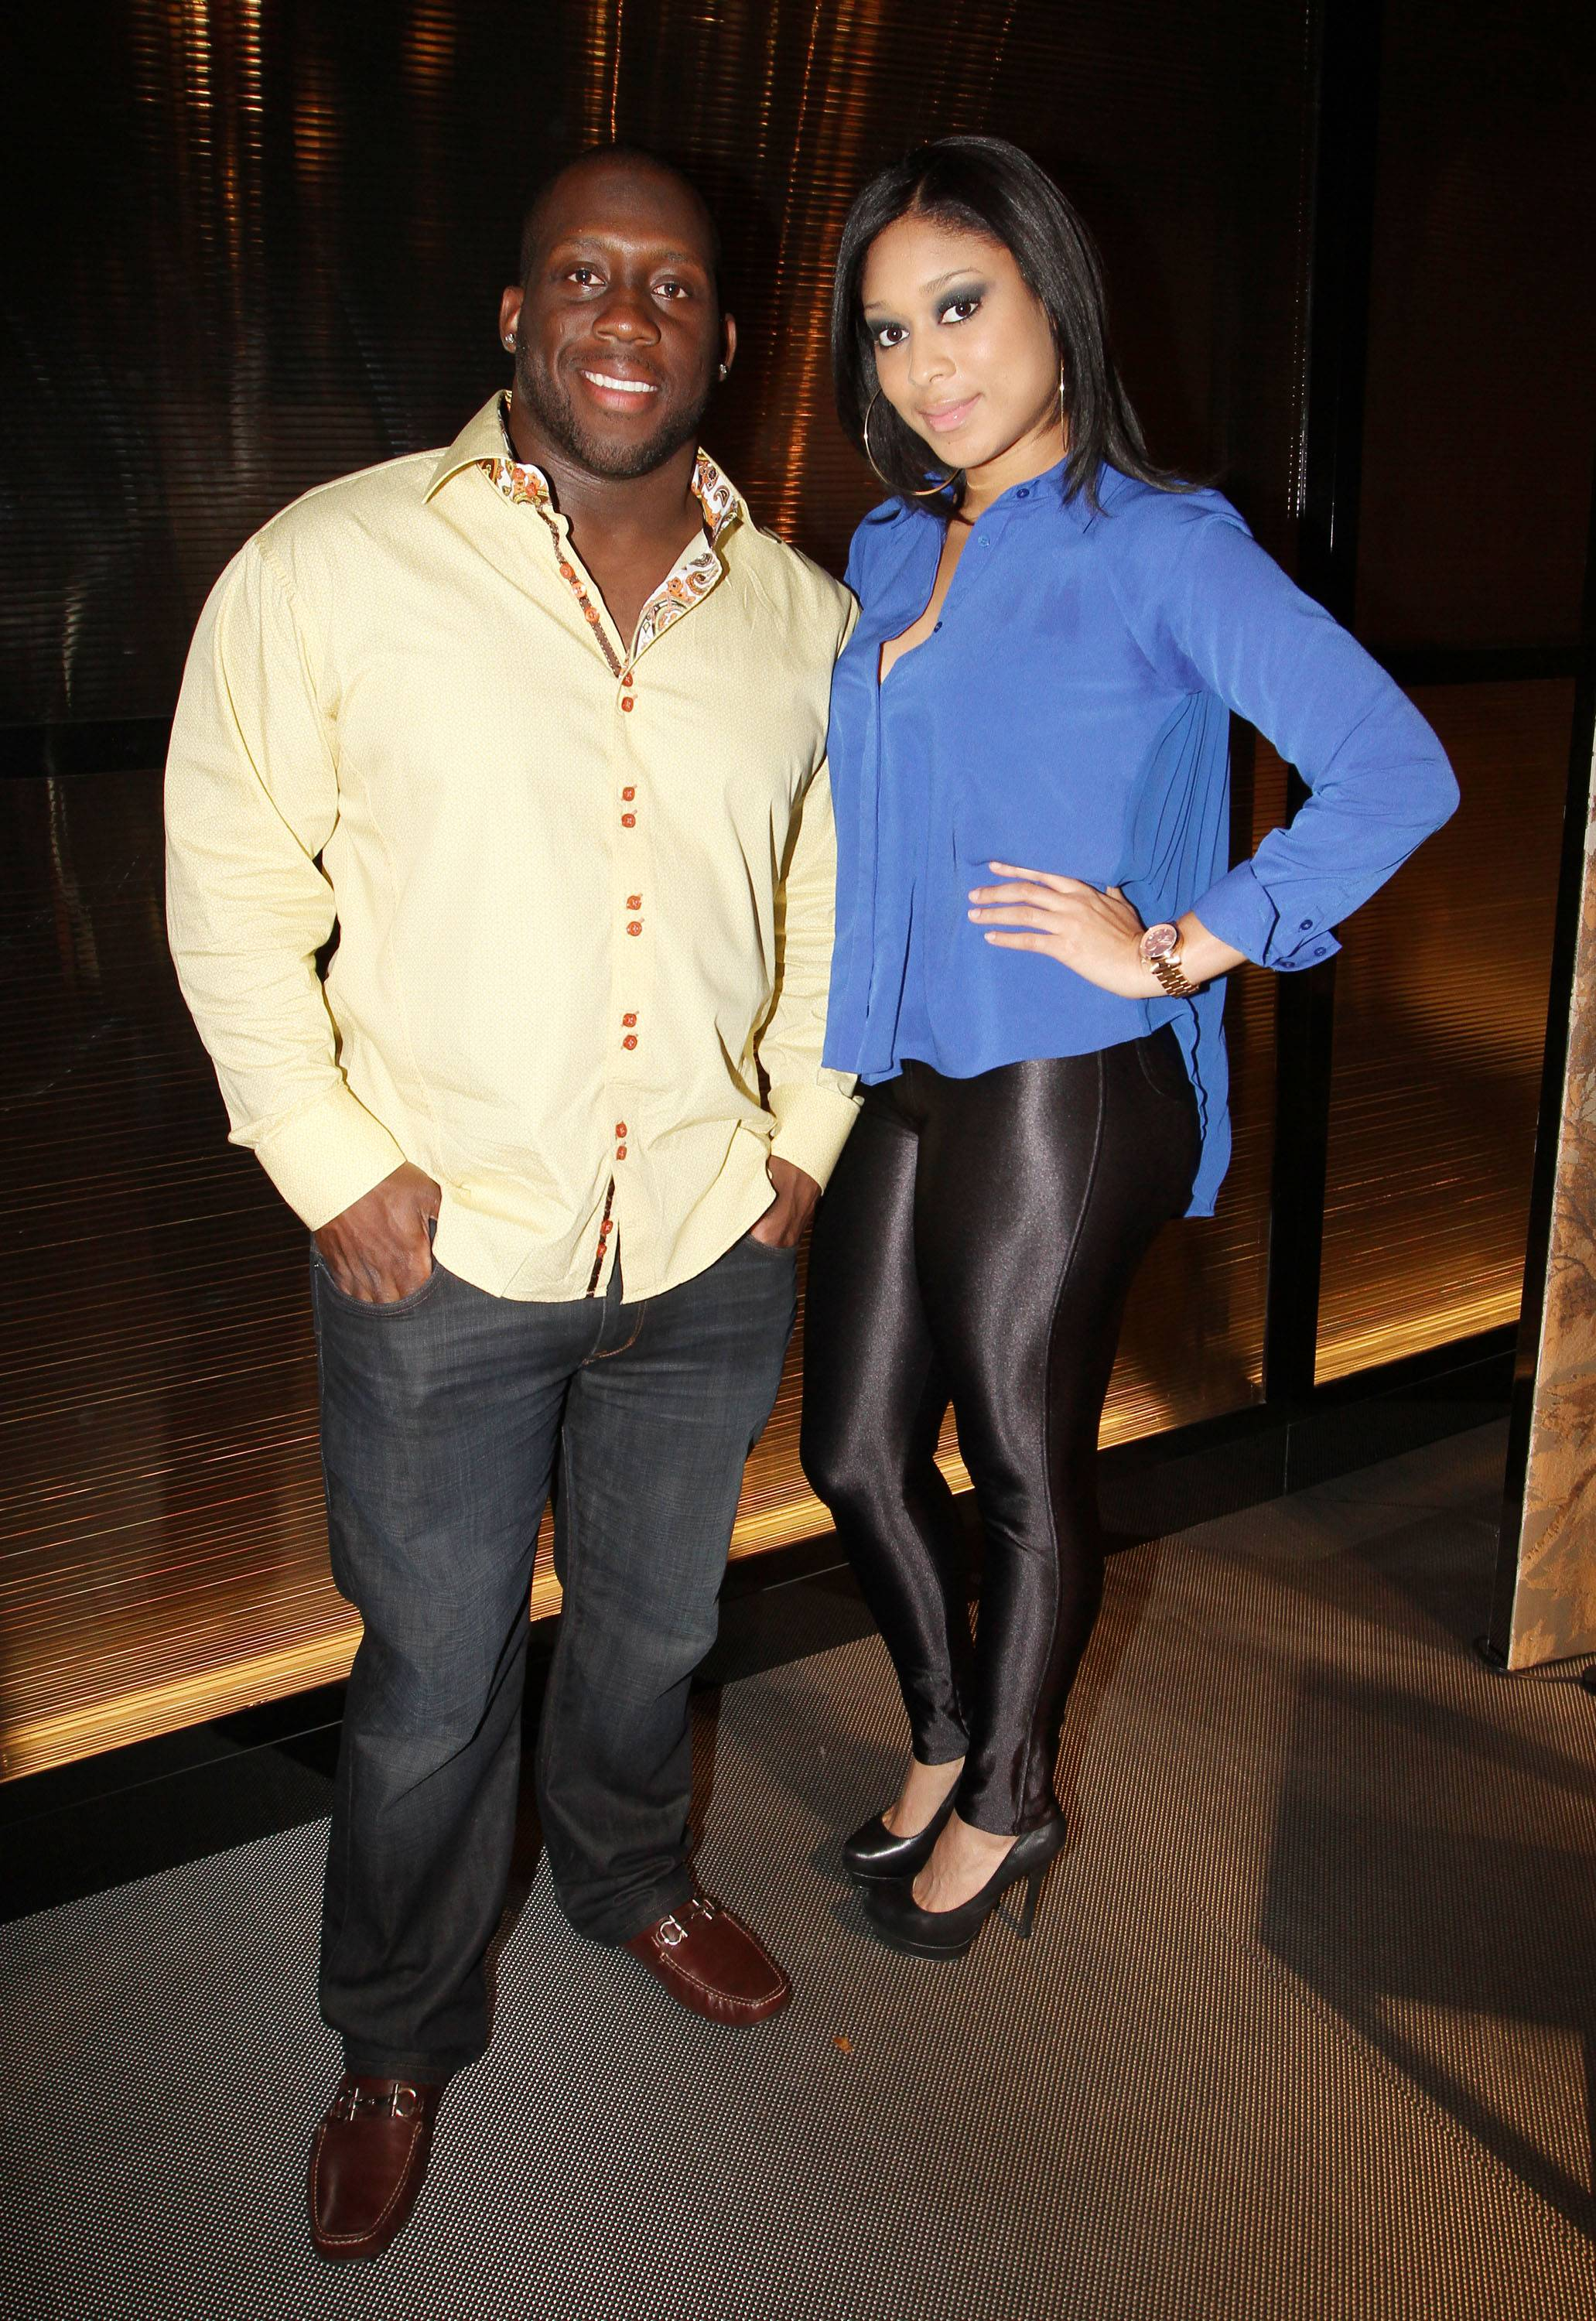 Stephen Tulloch, Detroit Lions Linebacker and girlfriend Vanessa Alleyne